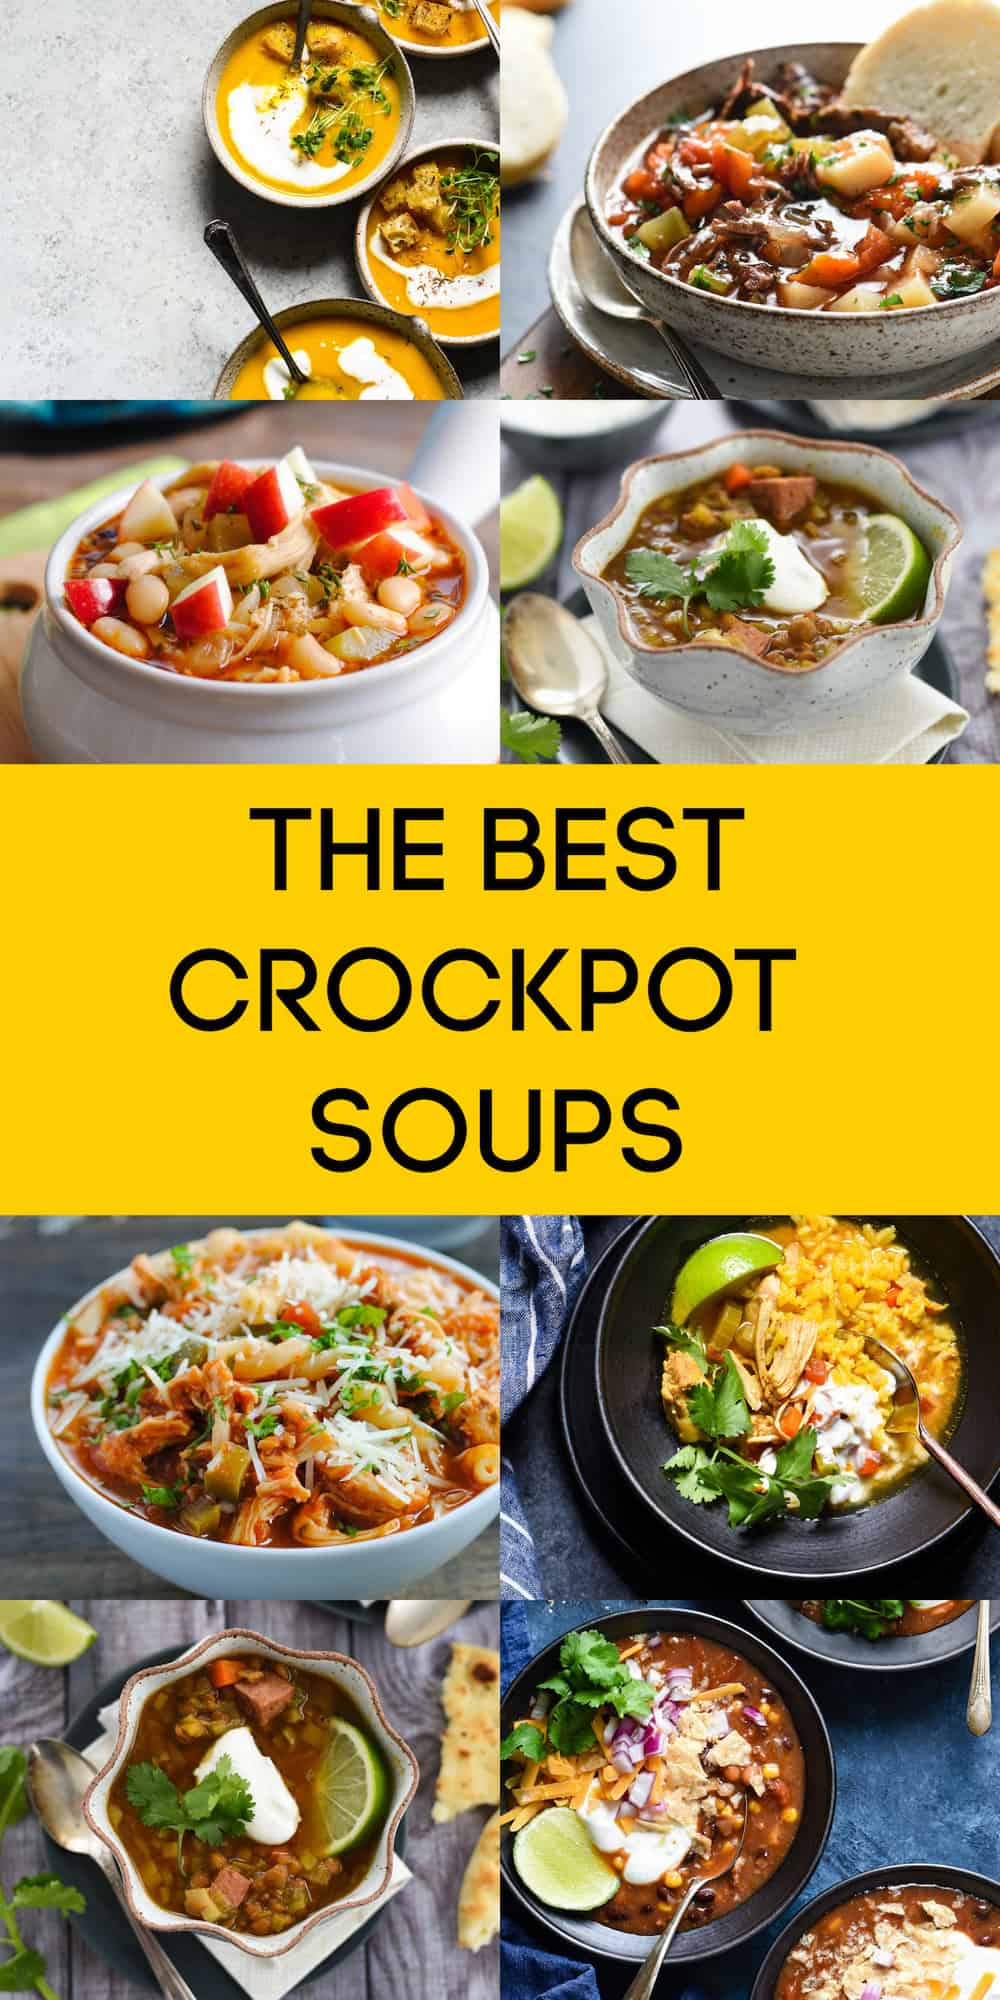 Looking for an easy slow cooker soup? These crockpot soup recipes have been made many times over the years, and they're all tried and true. Small effort and big flavor! | foxeslovelemons.com